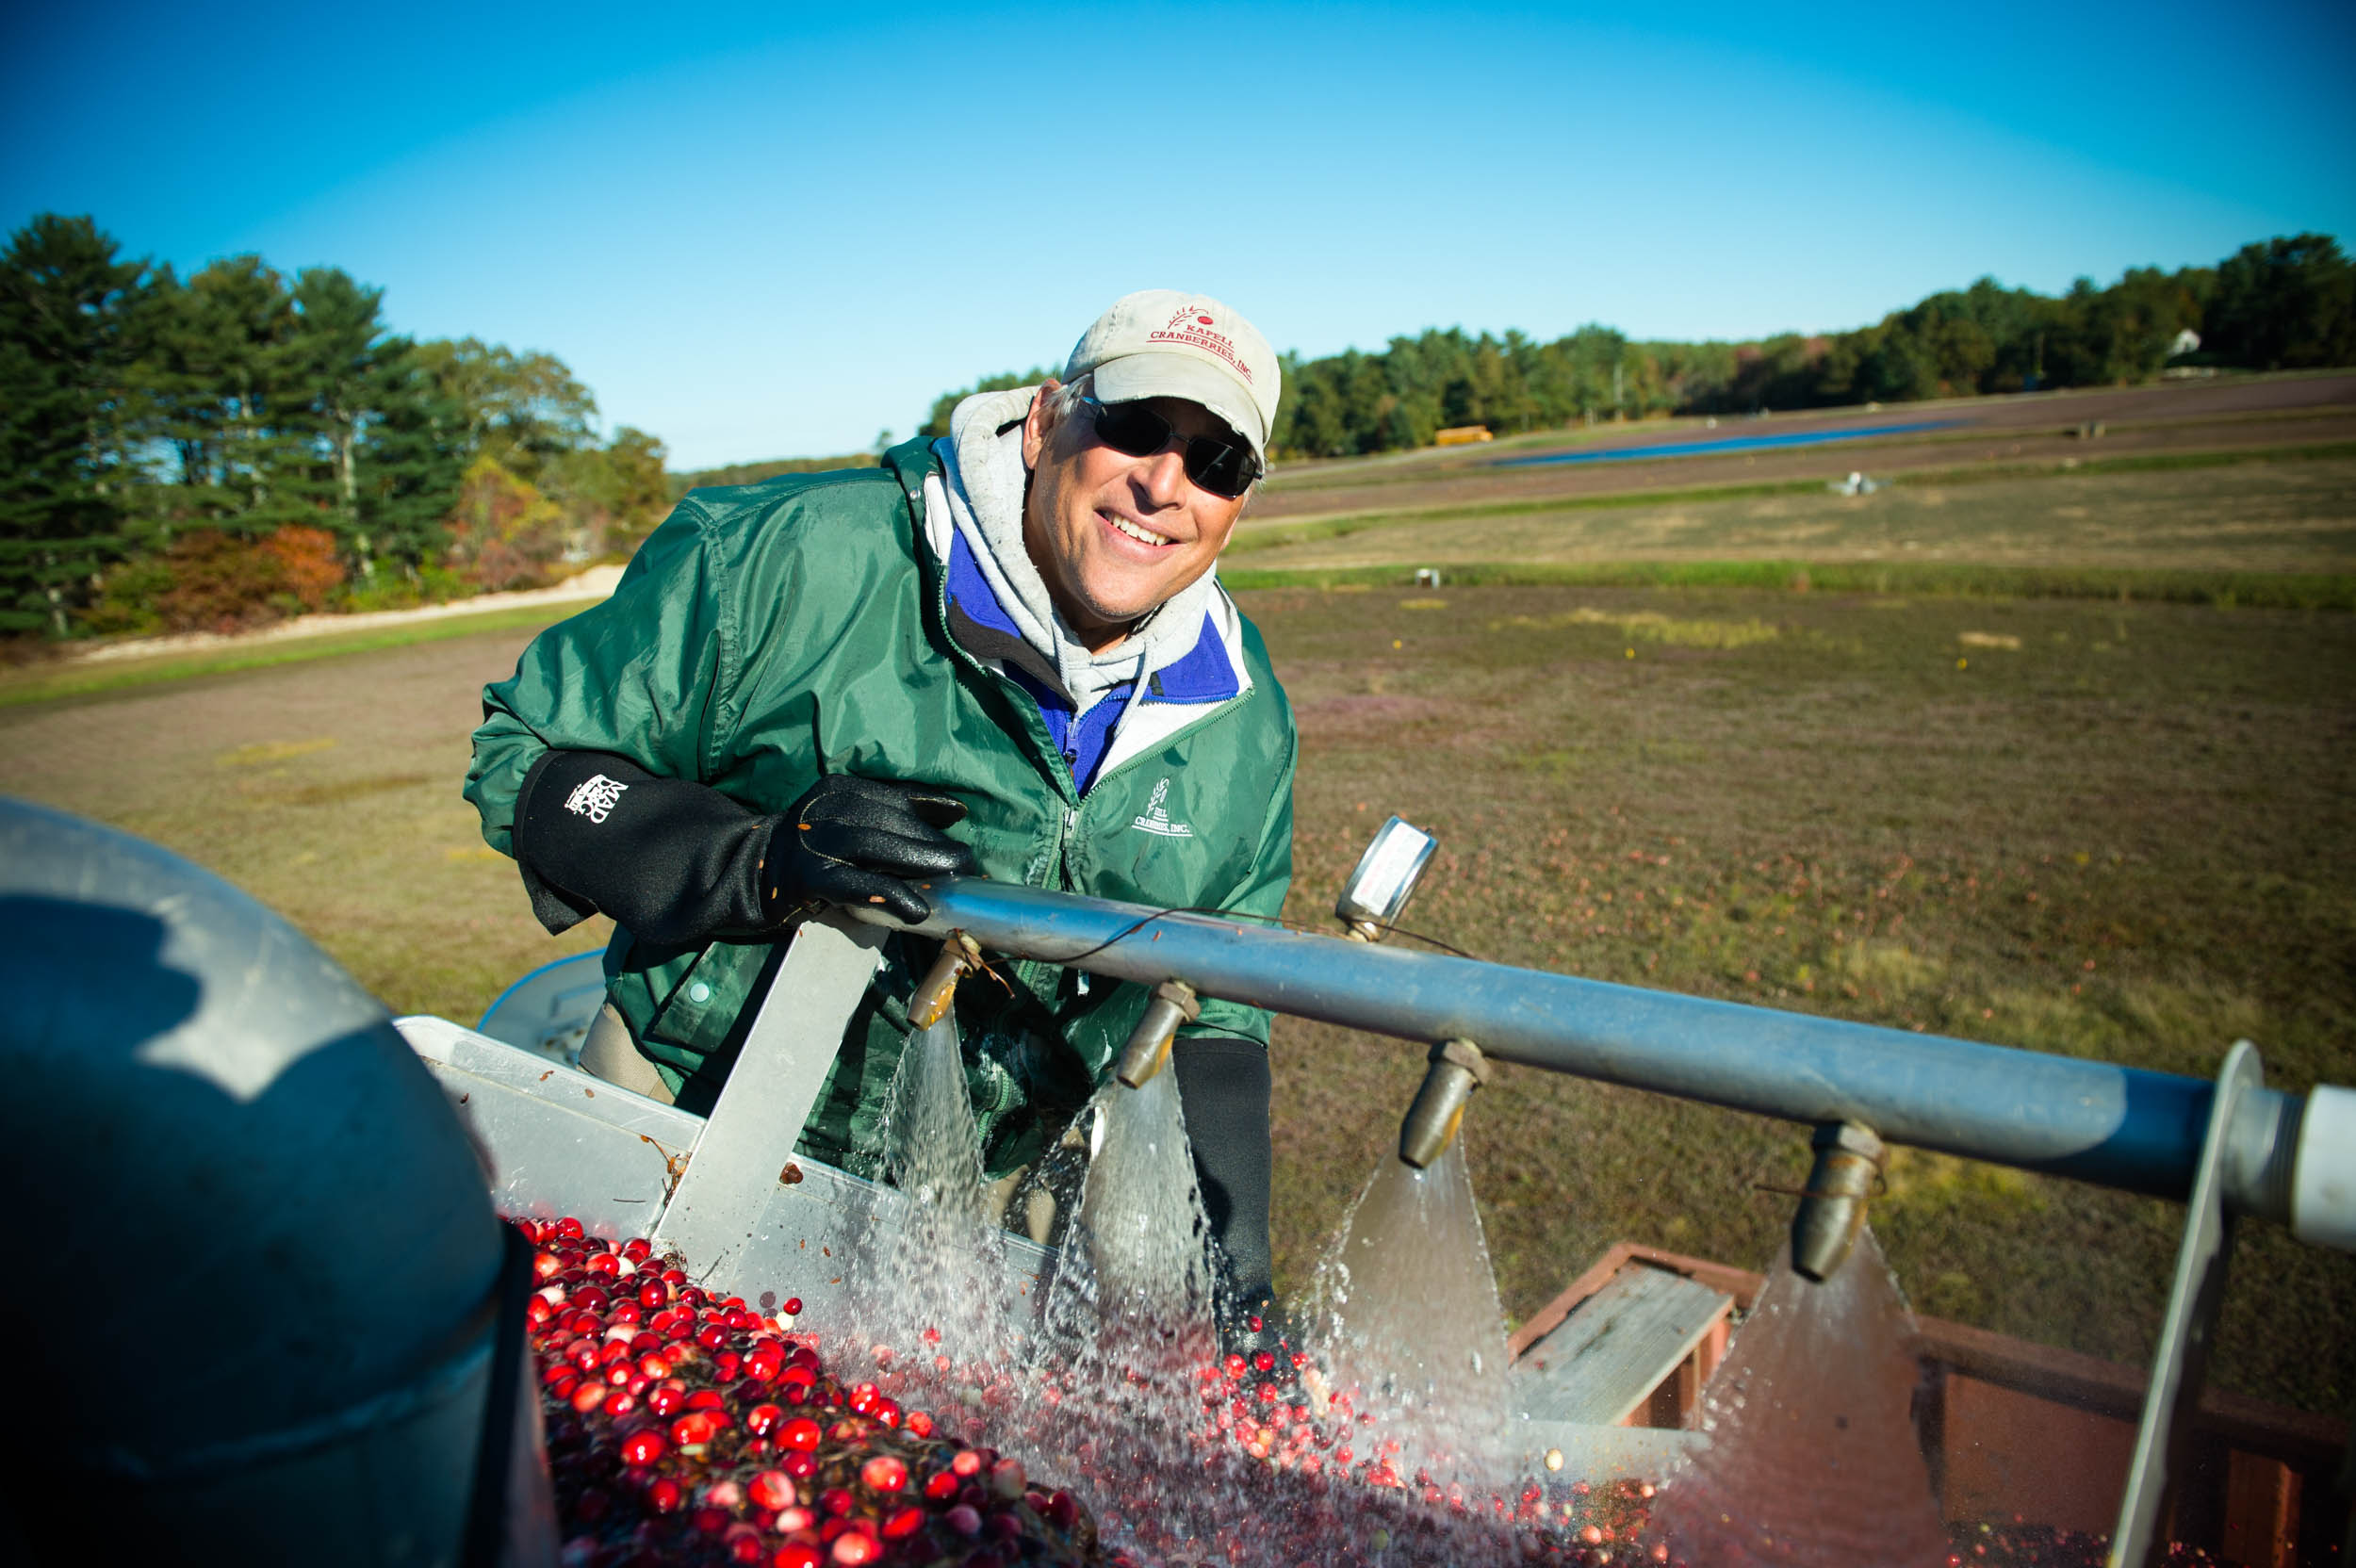 Maura Wayman Photography, Photography, Corporate Photography, stock, stock images, Massachusetts, Boston, Metro West, Wellesley, Cranberries, berries, berry, cranberry, red, red berries,  dried cranberries, dried fruit, farmer, harvest, field, machine, farming machine, water, Cape Cod,